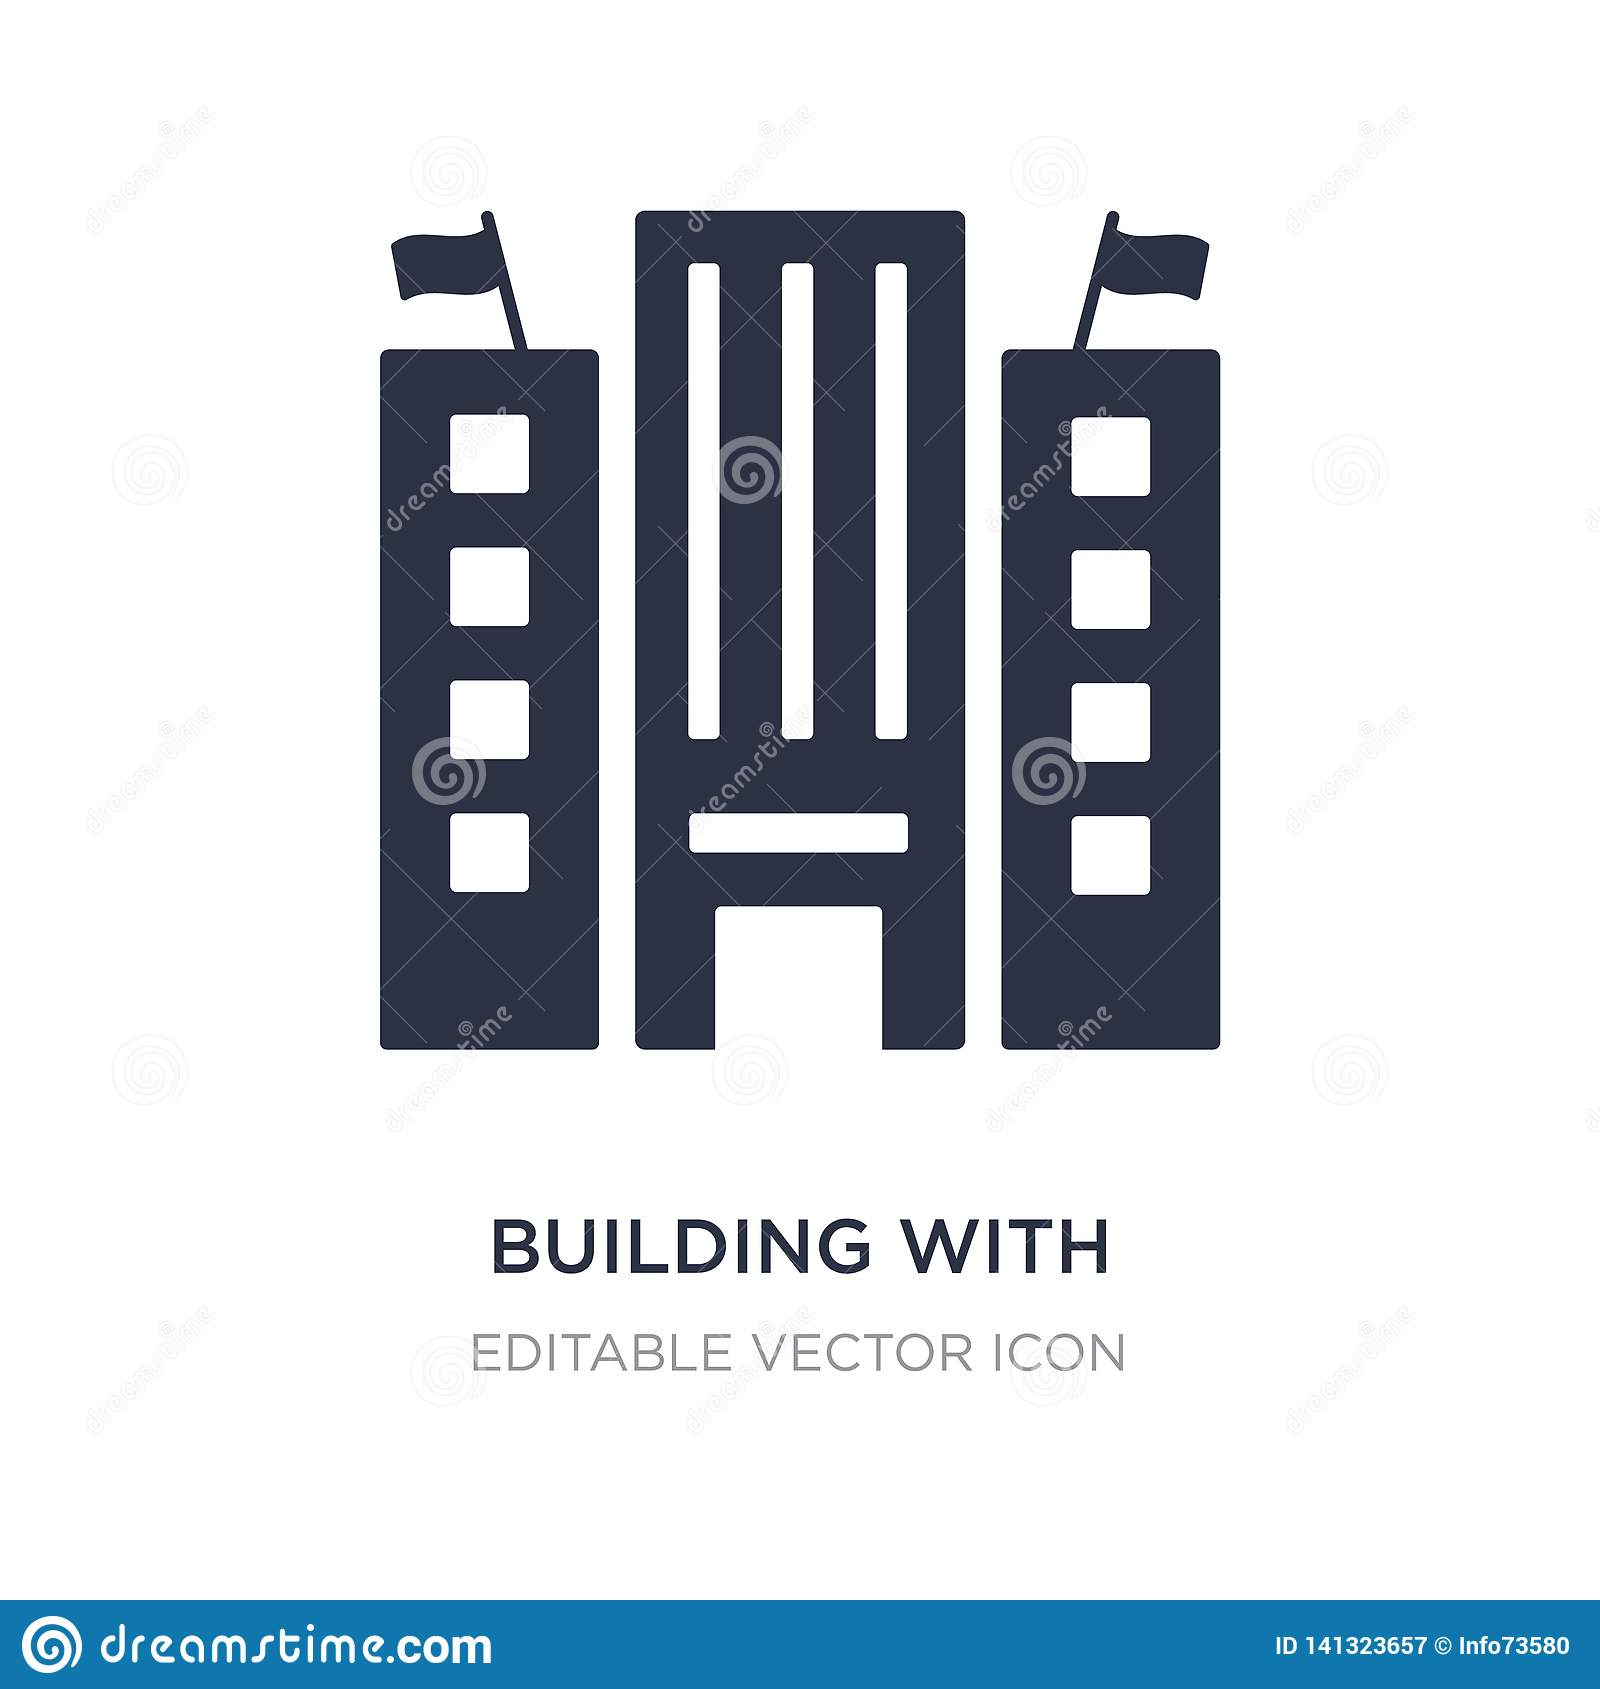 building with two flags icon on white background. Simple element illustration from Buildings concept